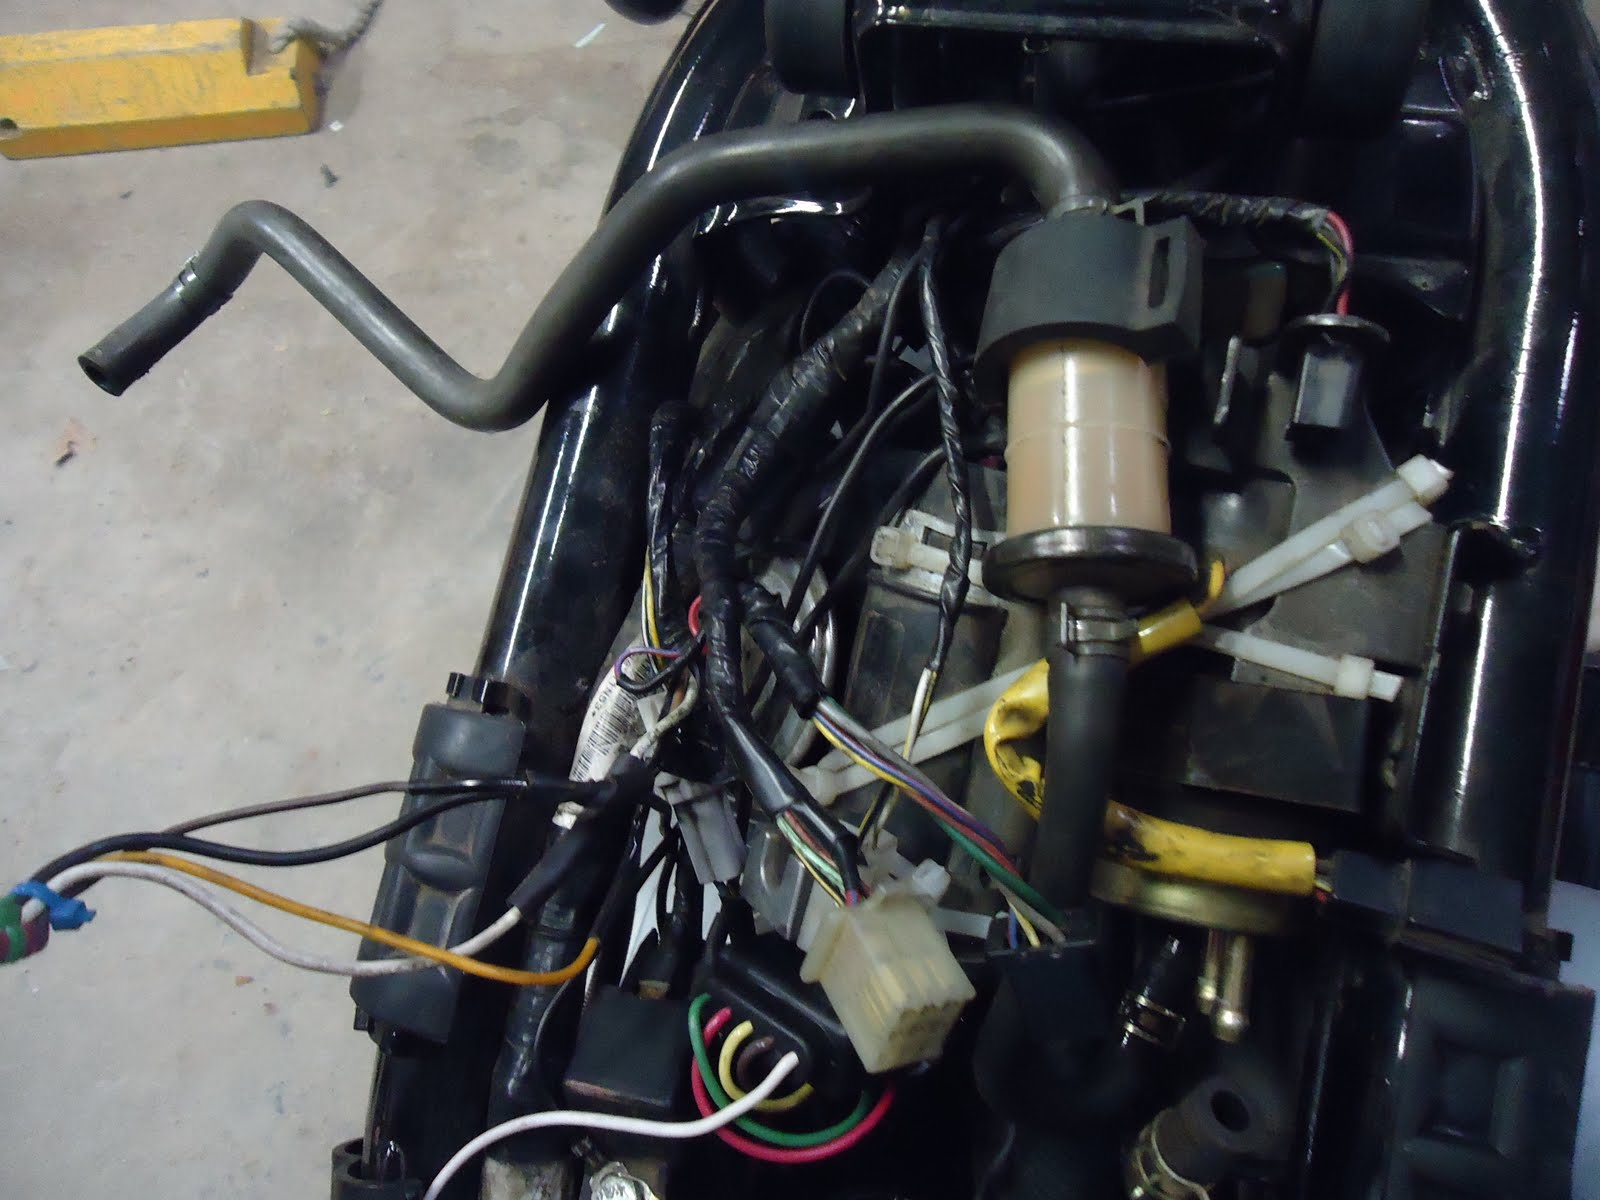 Kawasaki Vn 1500 Wiring Diagram Library Vulcan 800 Carburetor Tear It Up Fix Repeat Fuel Pump Bypass Permanently Rh Tearitupfixitrepeat Blogspot Com 1992